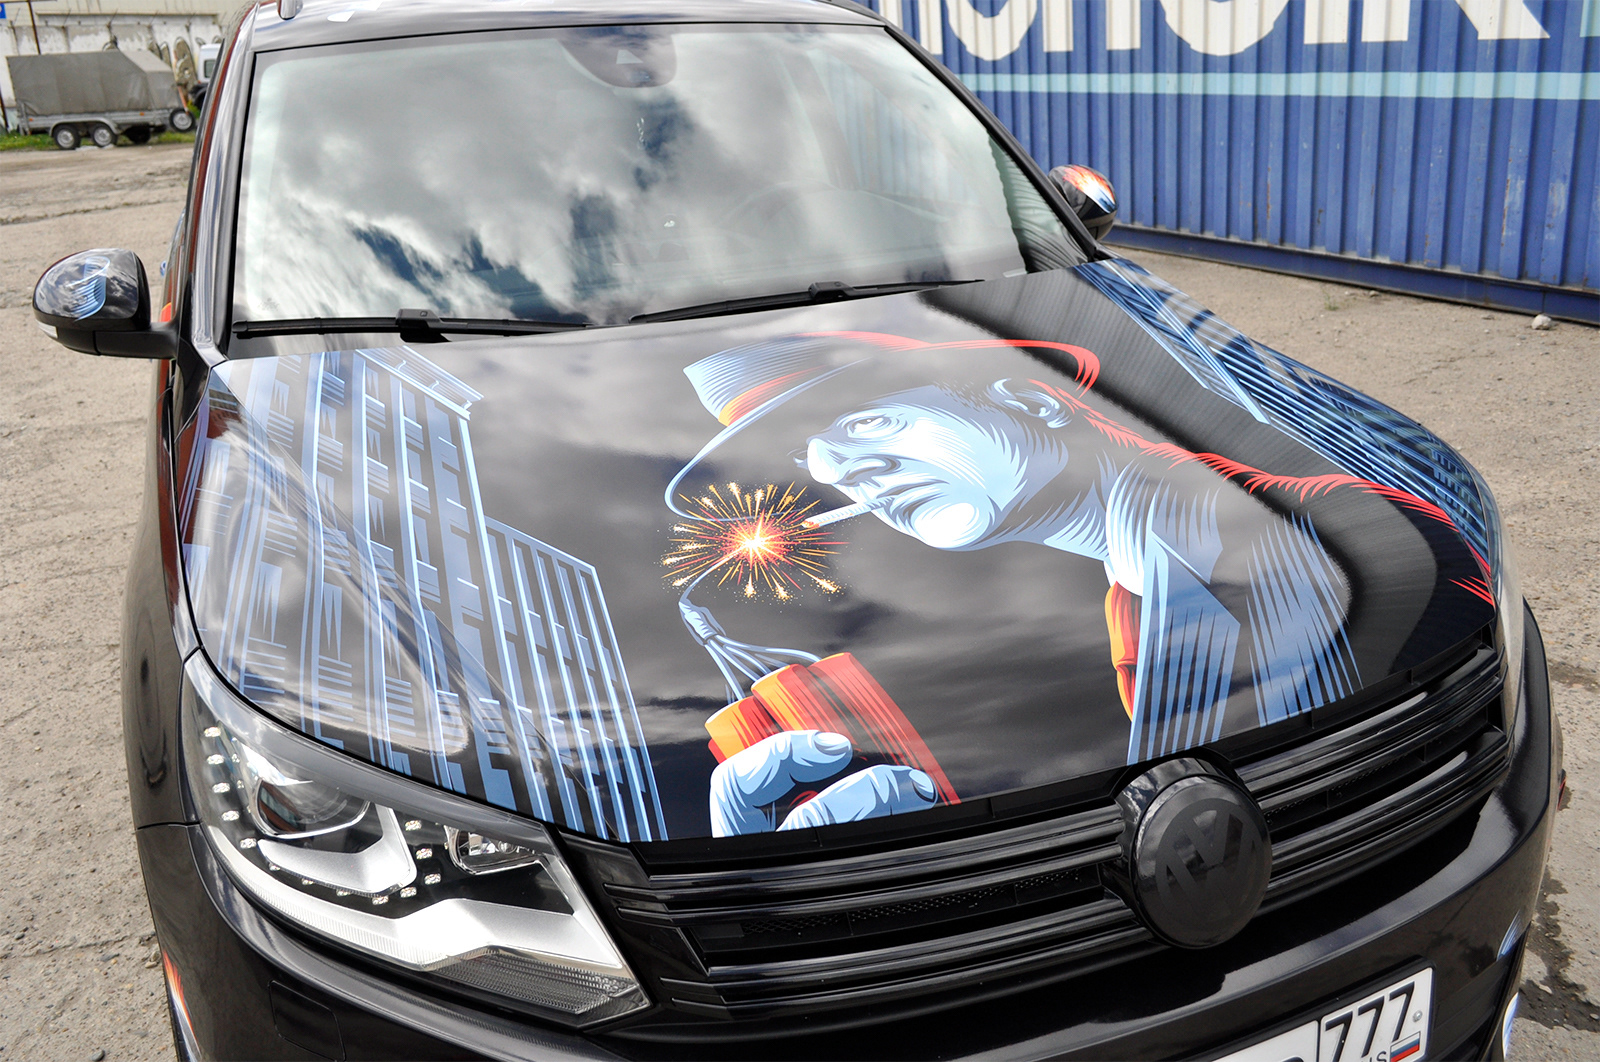 Illustrations for Tiguan vinyl wrapping on Behance